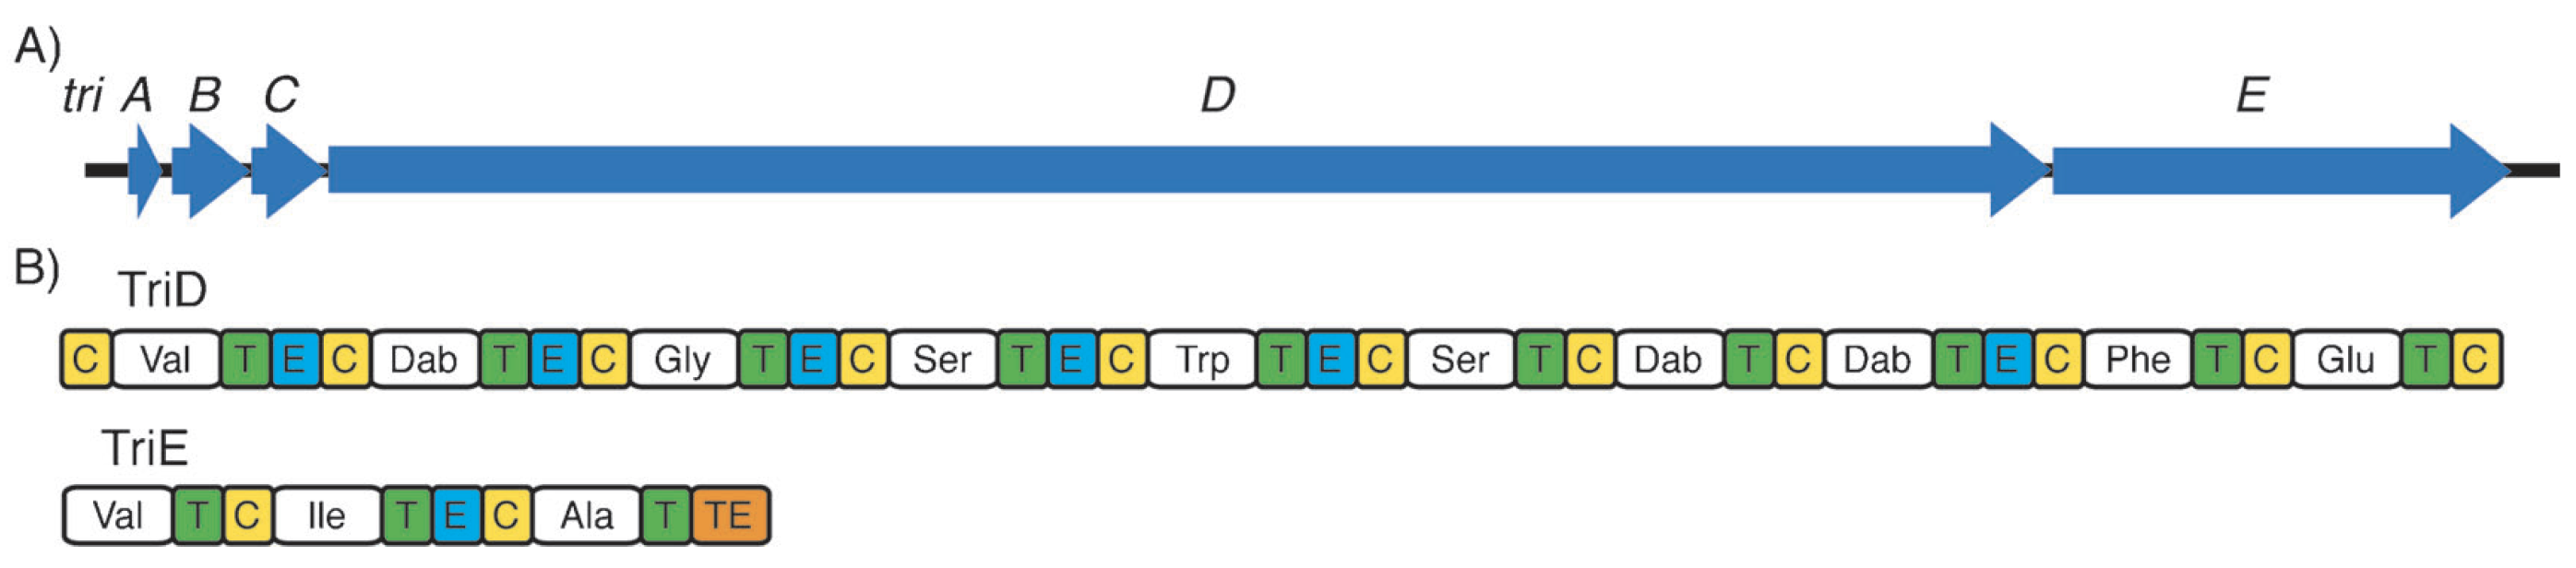 Publications figure showing putative tridecaptin A1 non-ribosomal peptide synthetase gene cluster